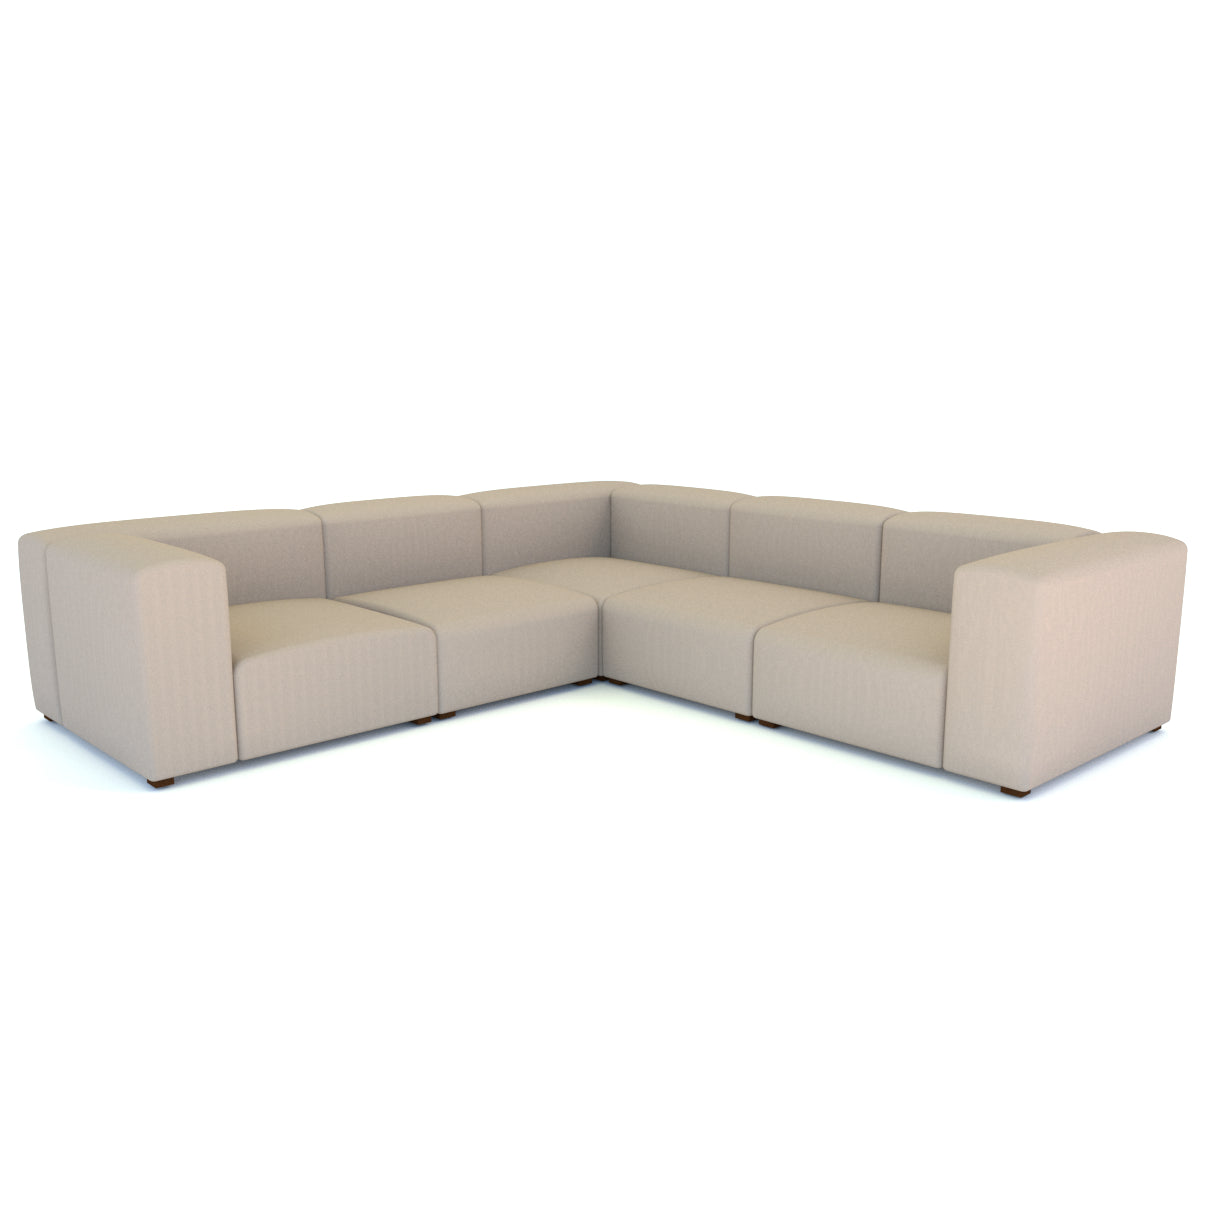 Mags Soft Corner Combination 1 Sofa (PRE-ORDER)